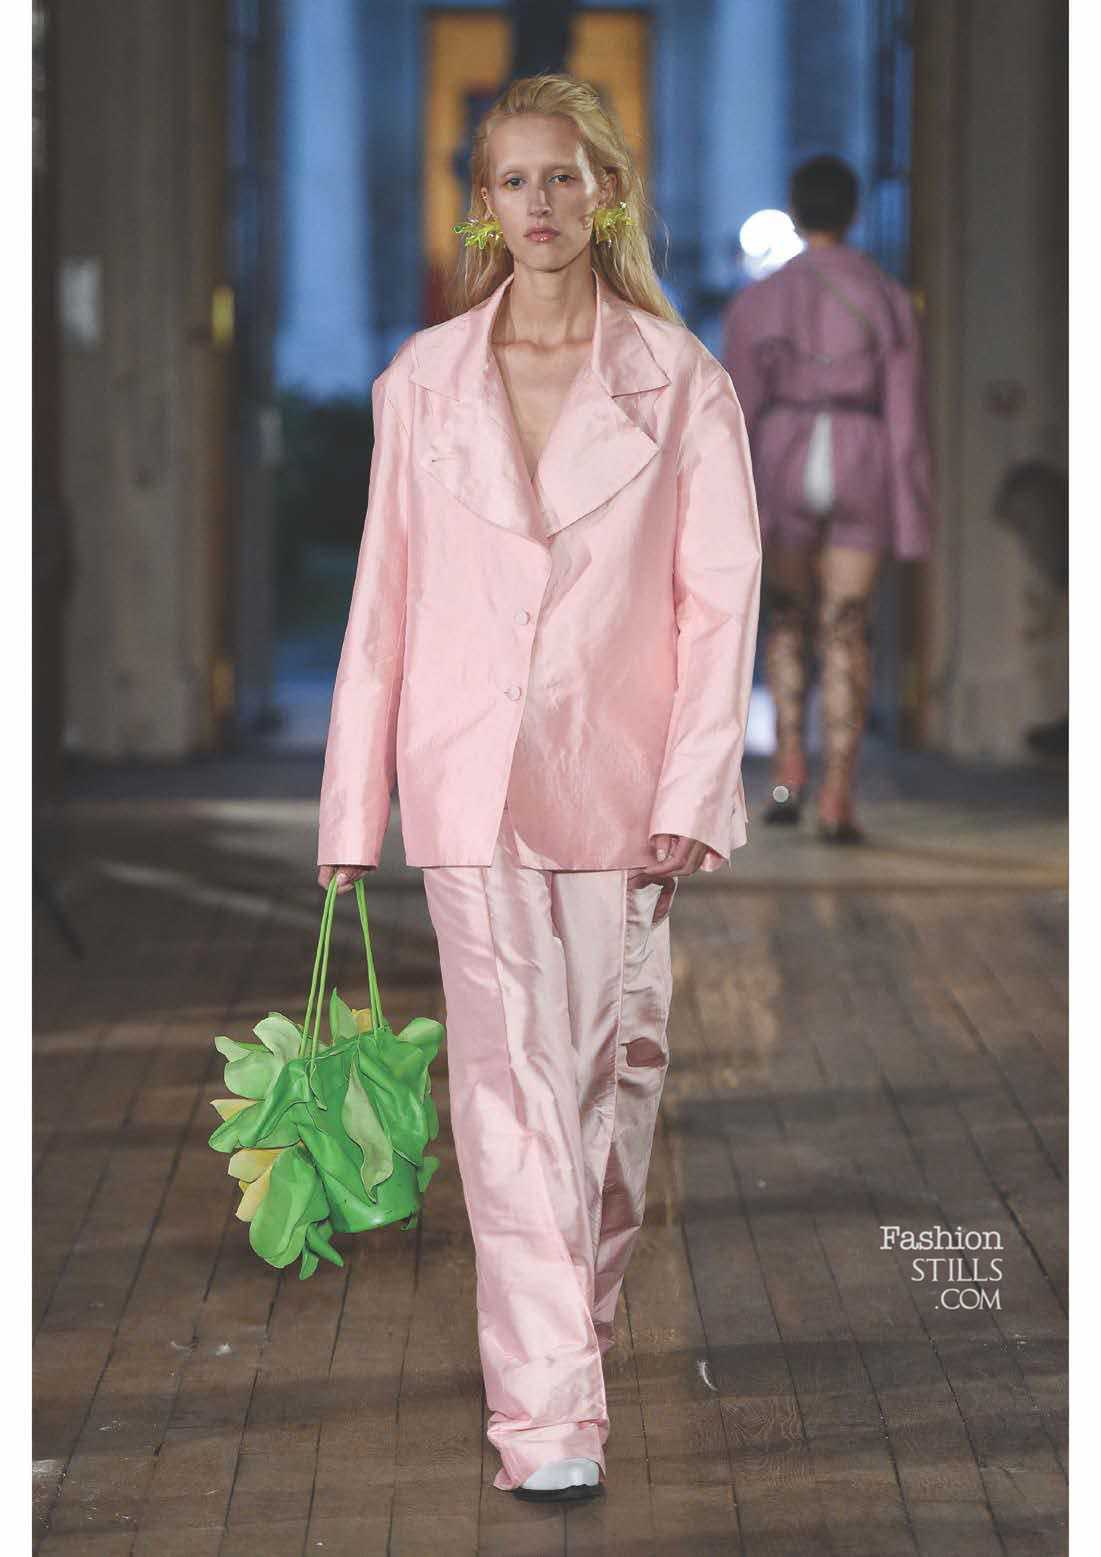 Neith Nyer_1513681565_a7_look-book-_-press-release-ss18-neith-nyer-010.jpg